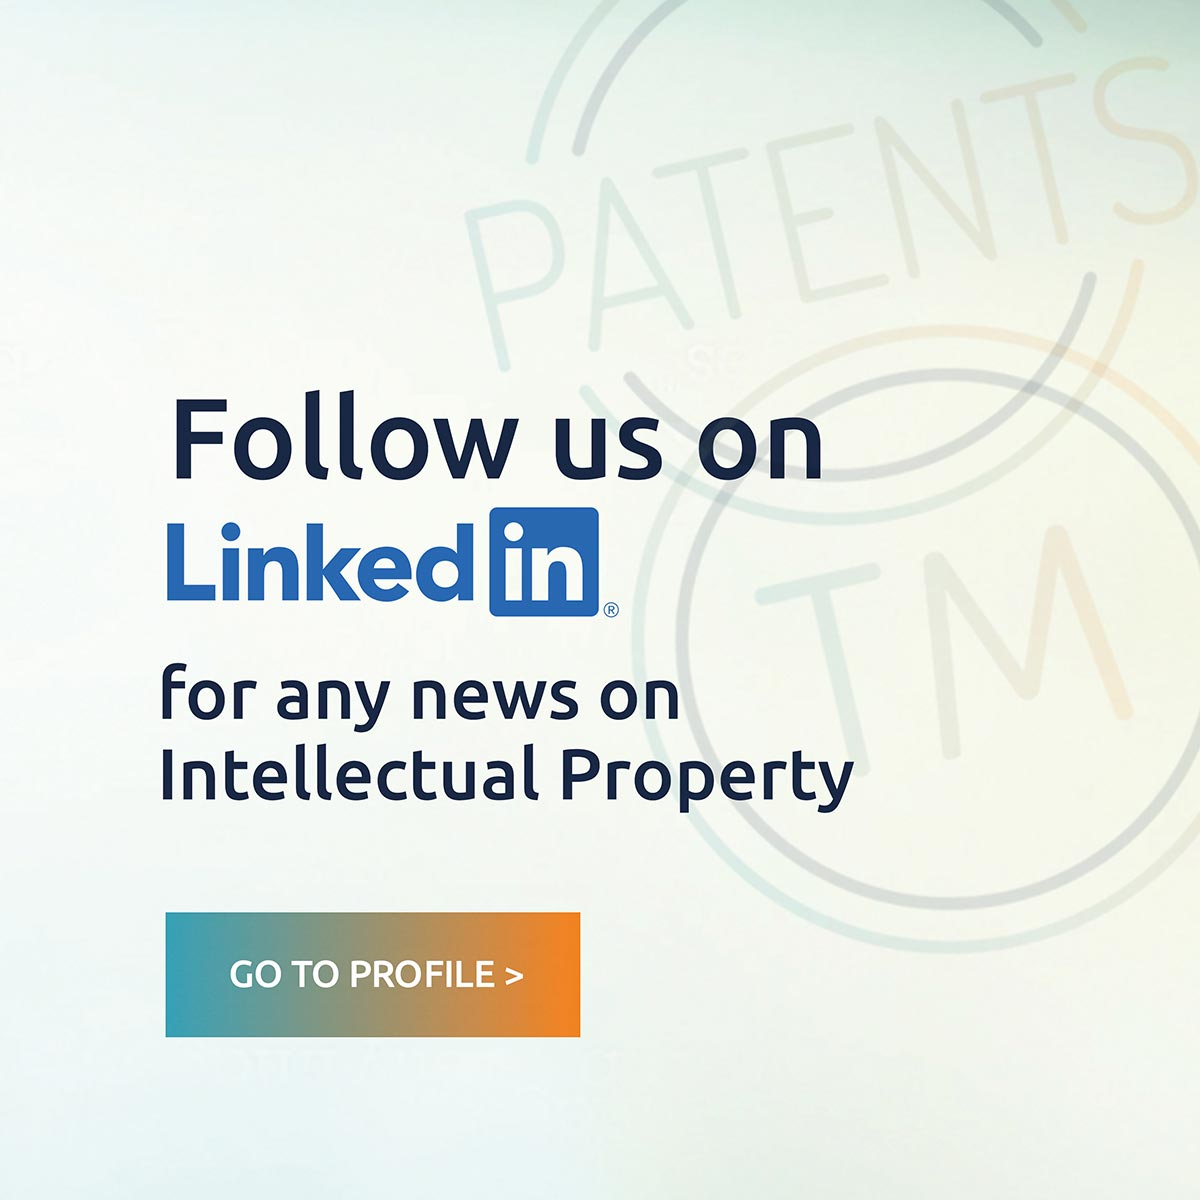 Follow us on LinkedIn for any news on Intellectual Property. Go to profile >